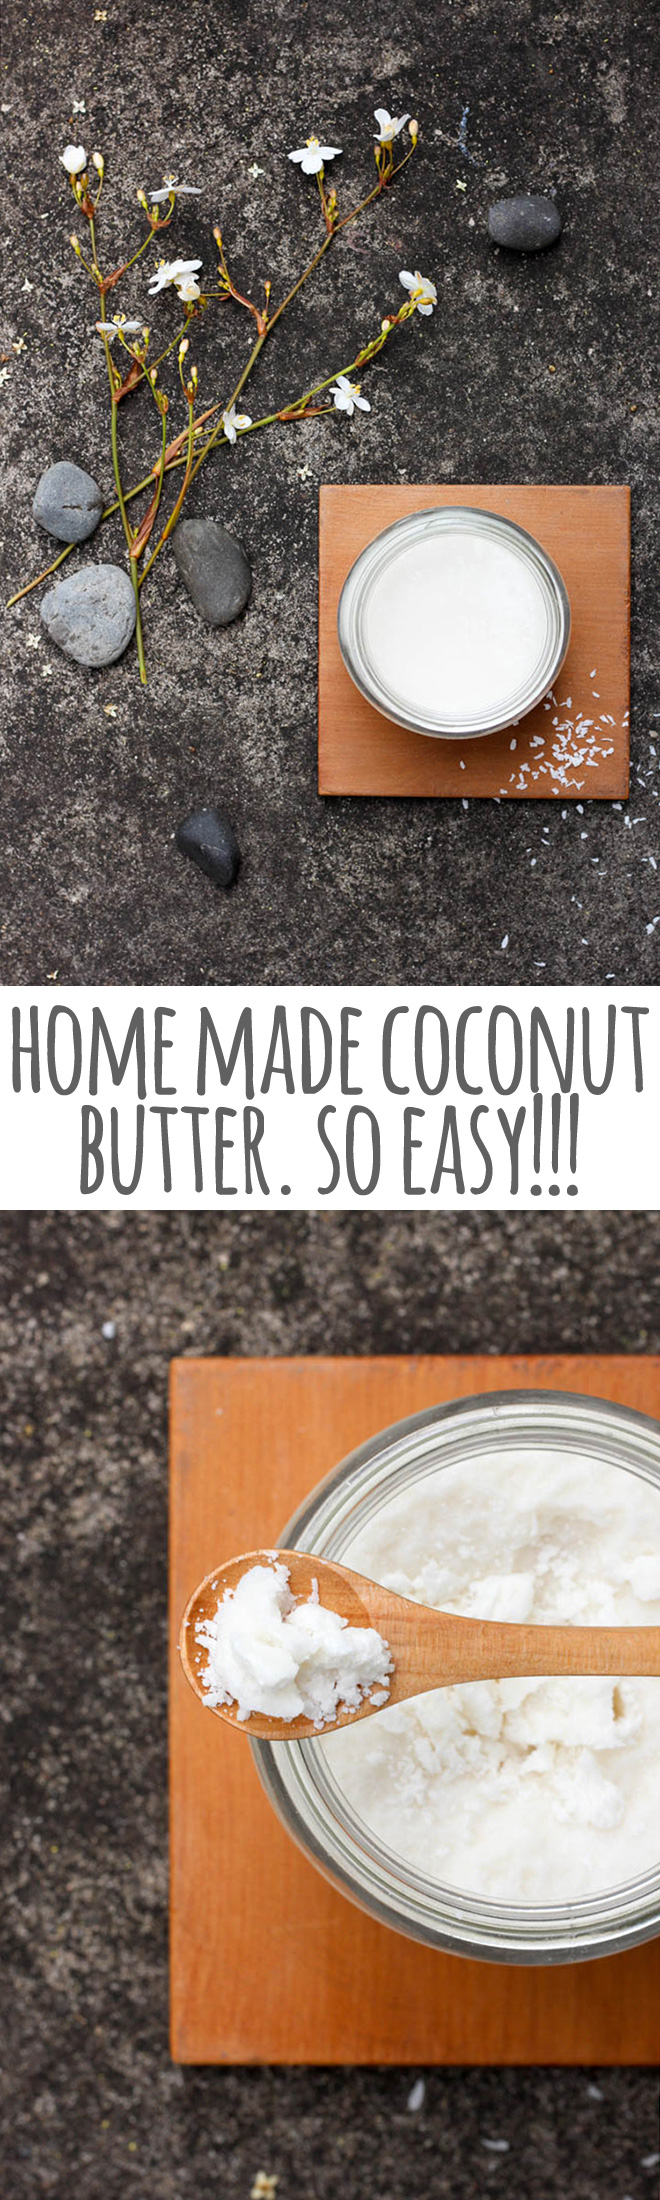 Making your own coconut butter has to be one of the simplest and most rewarding things you can do in the kitchen.